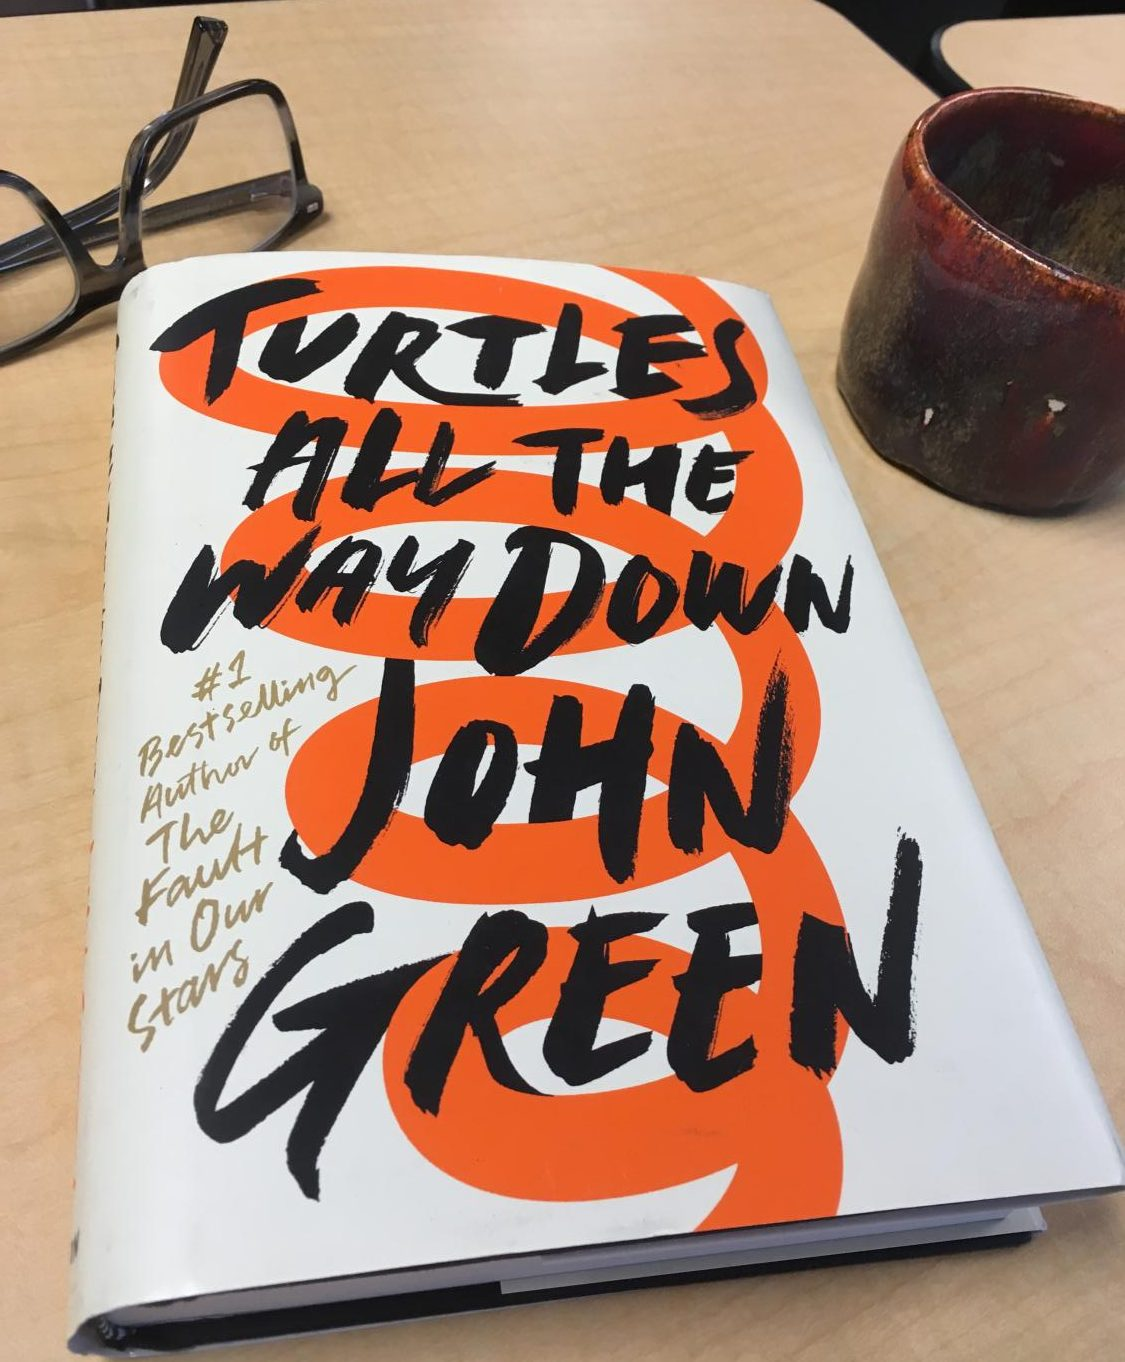 John Green returns to the YA scene after 5 years.